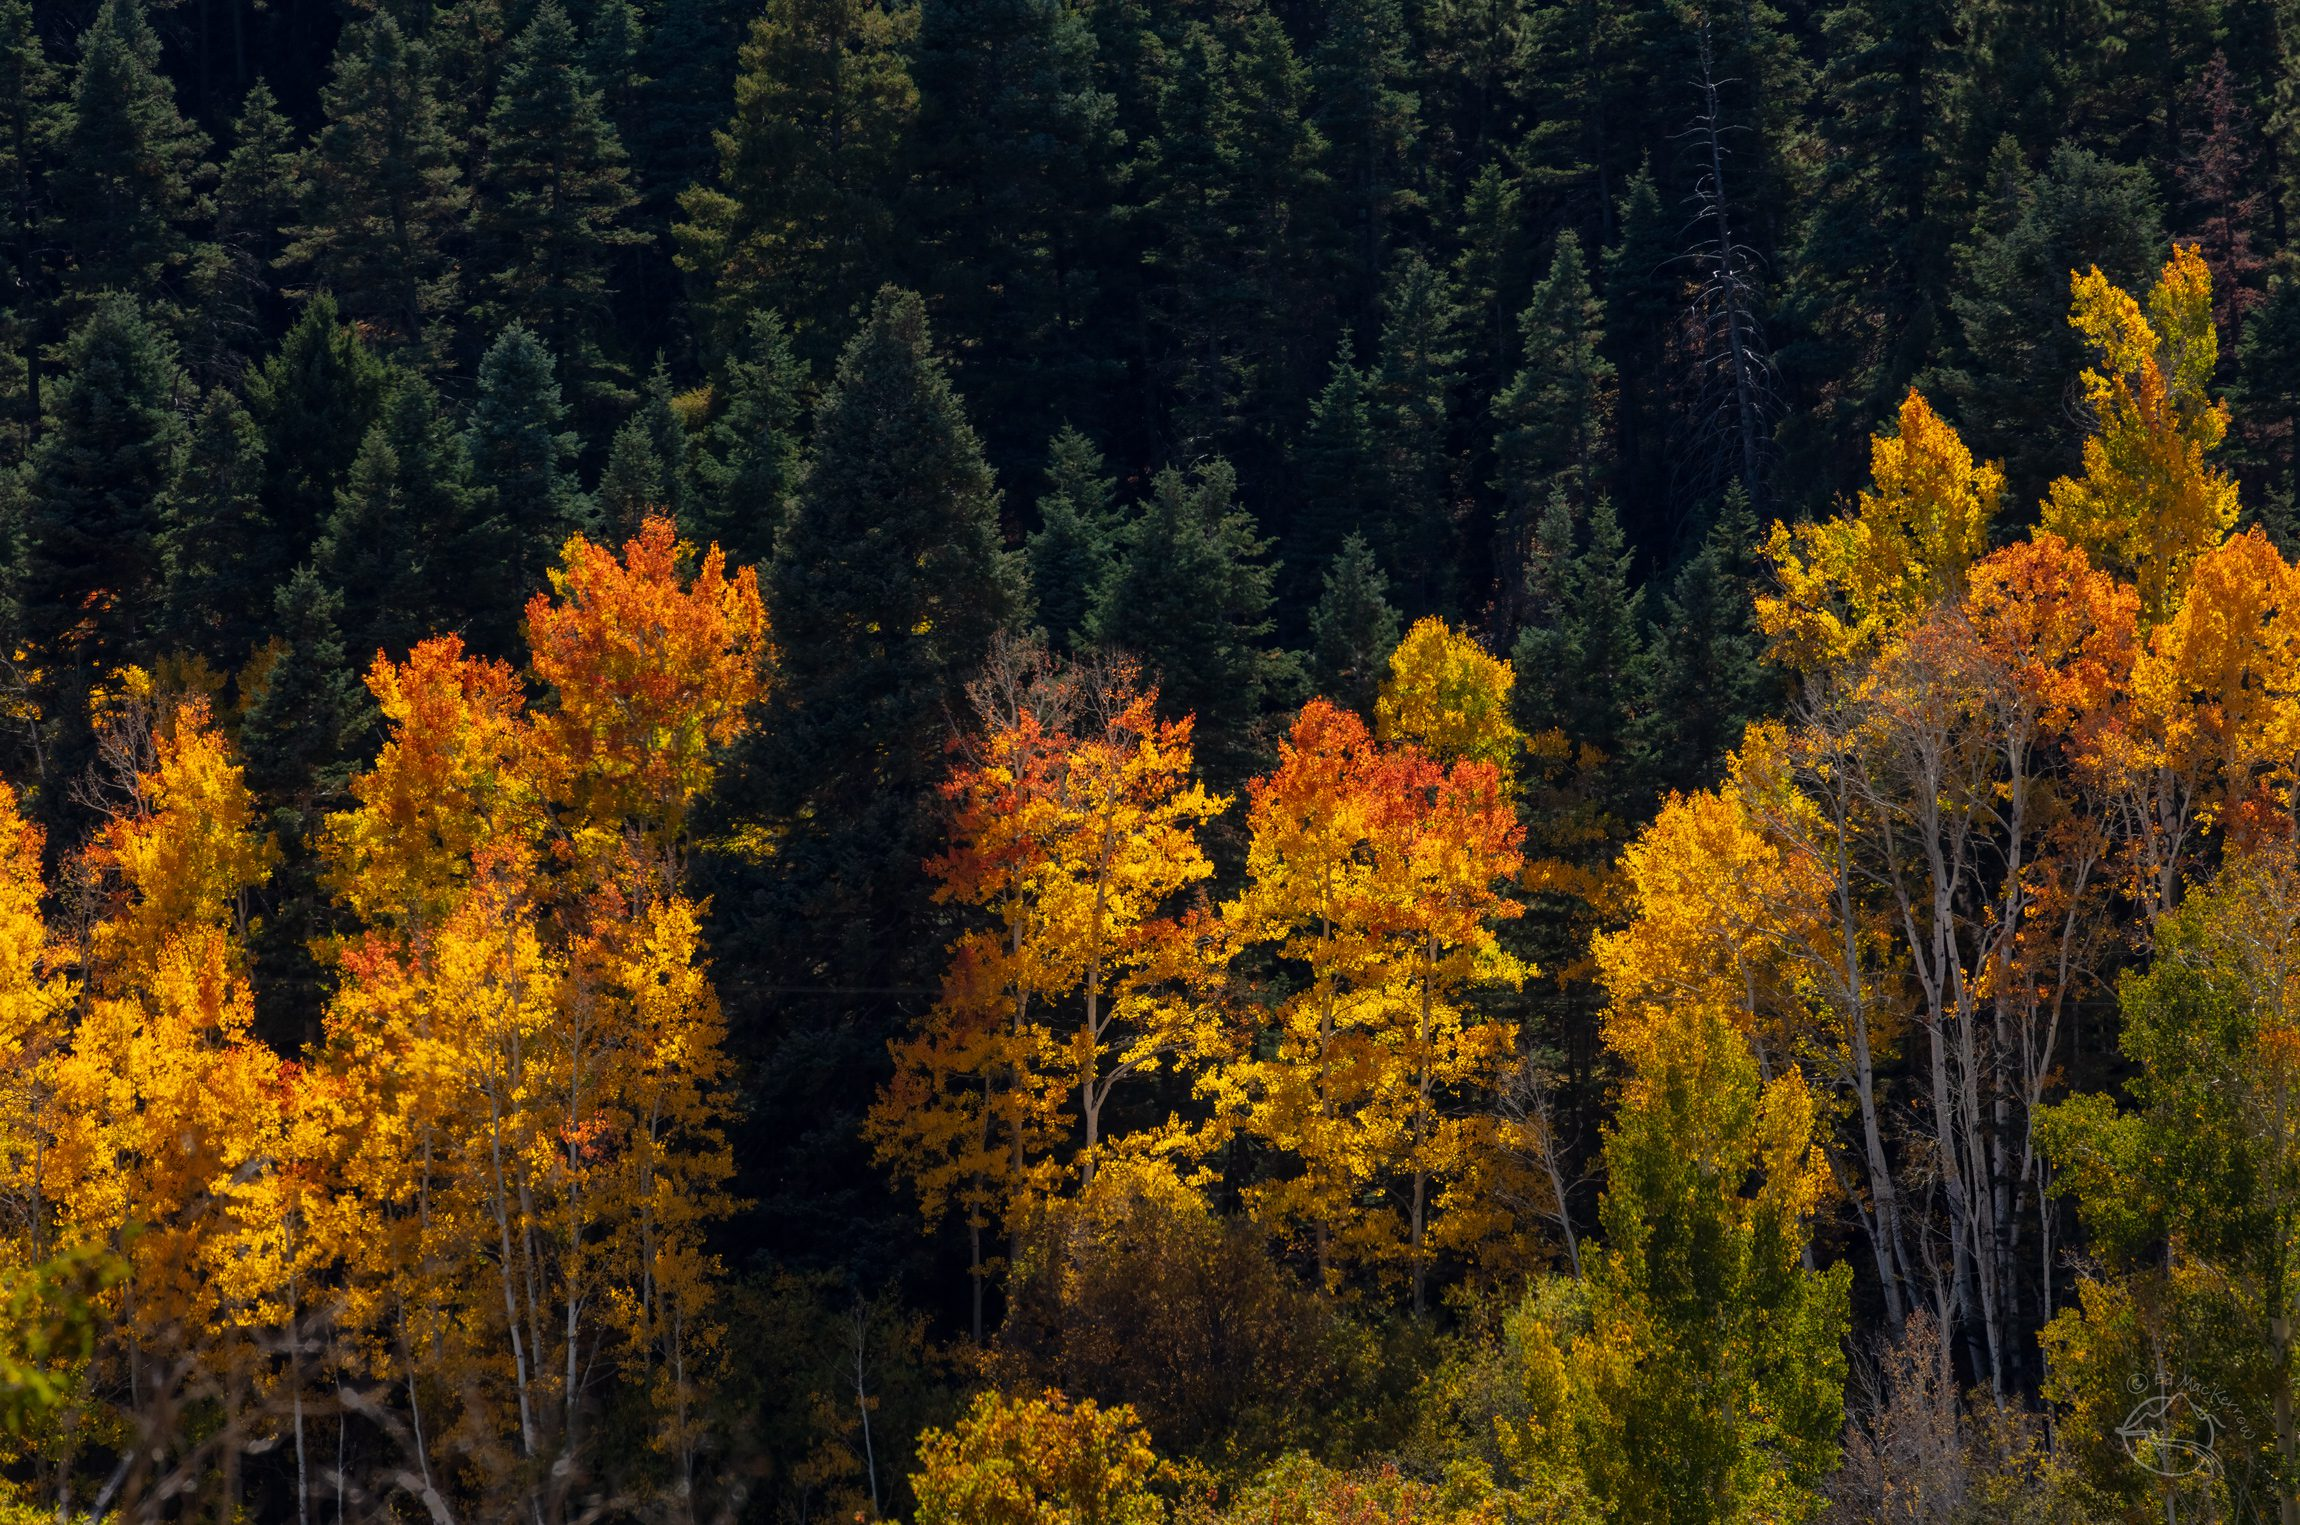 Red aspen trees in a New Mexico forest.